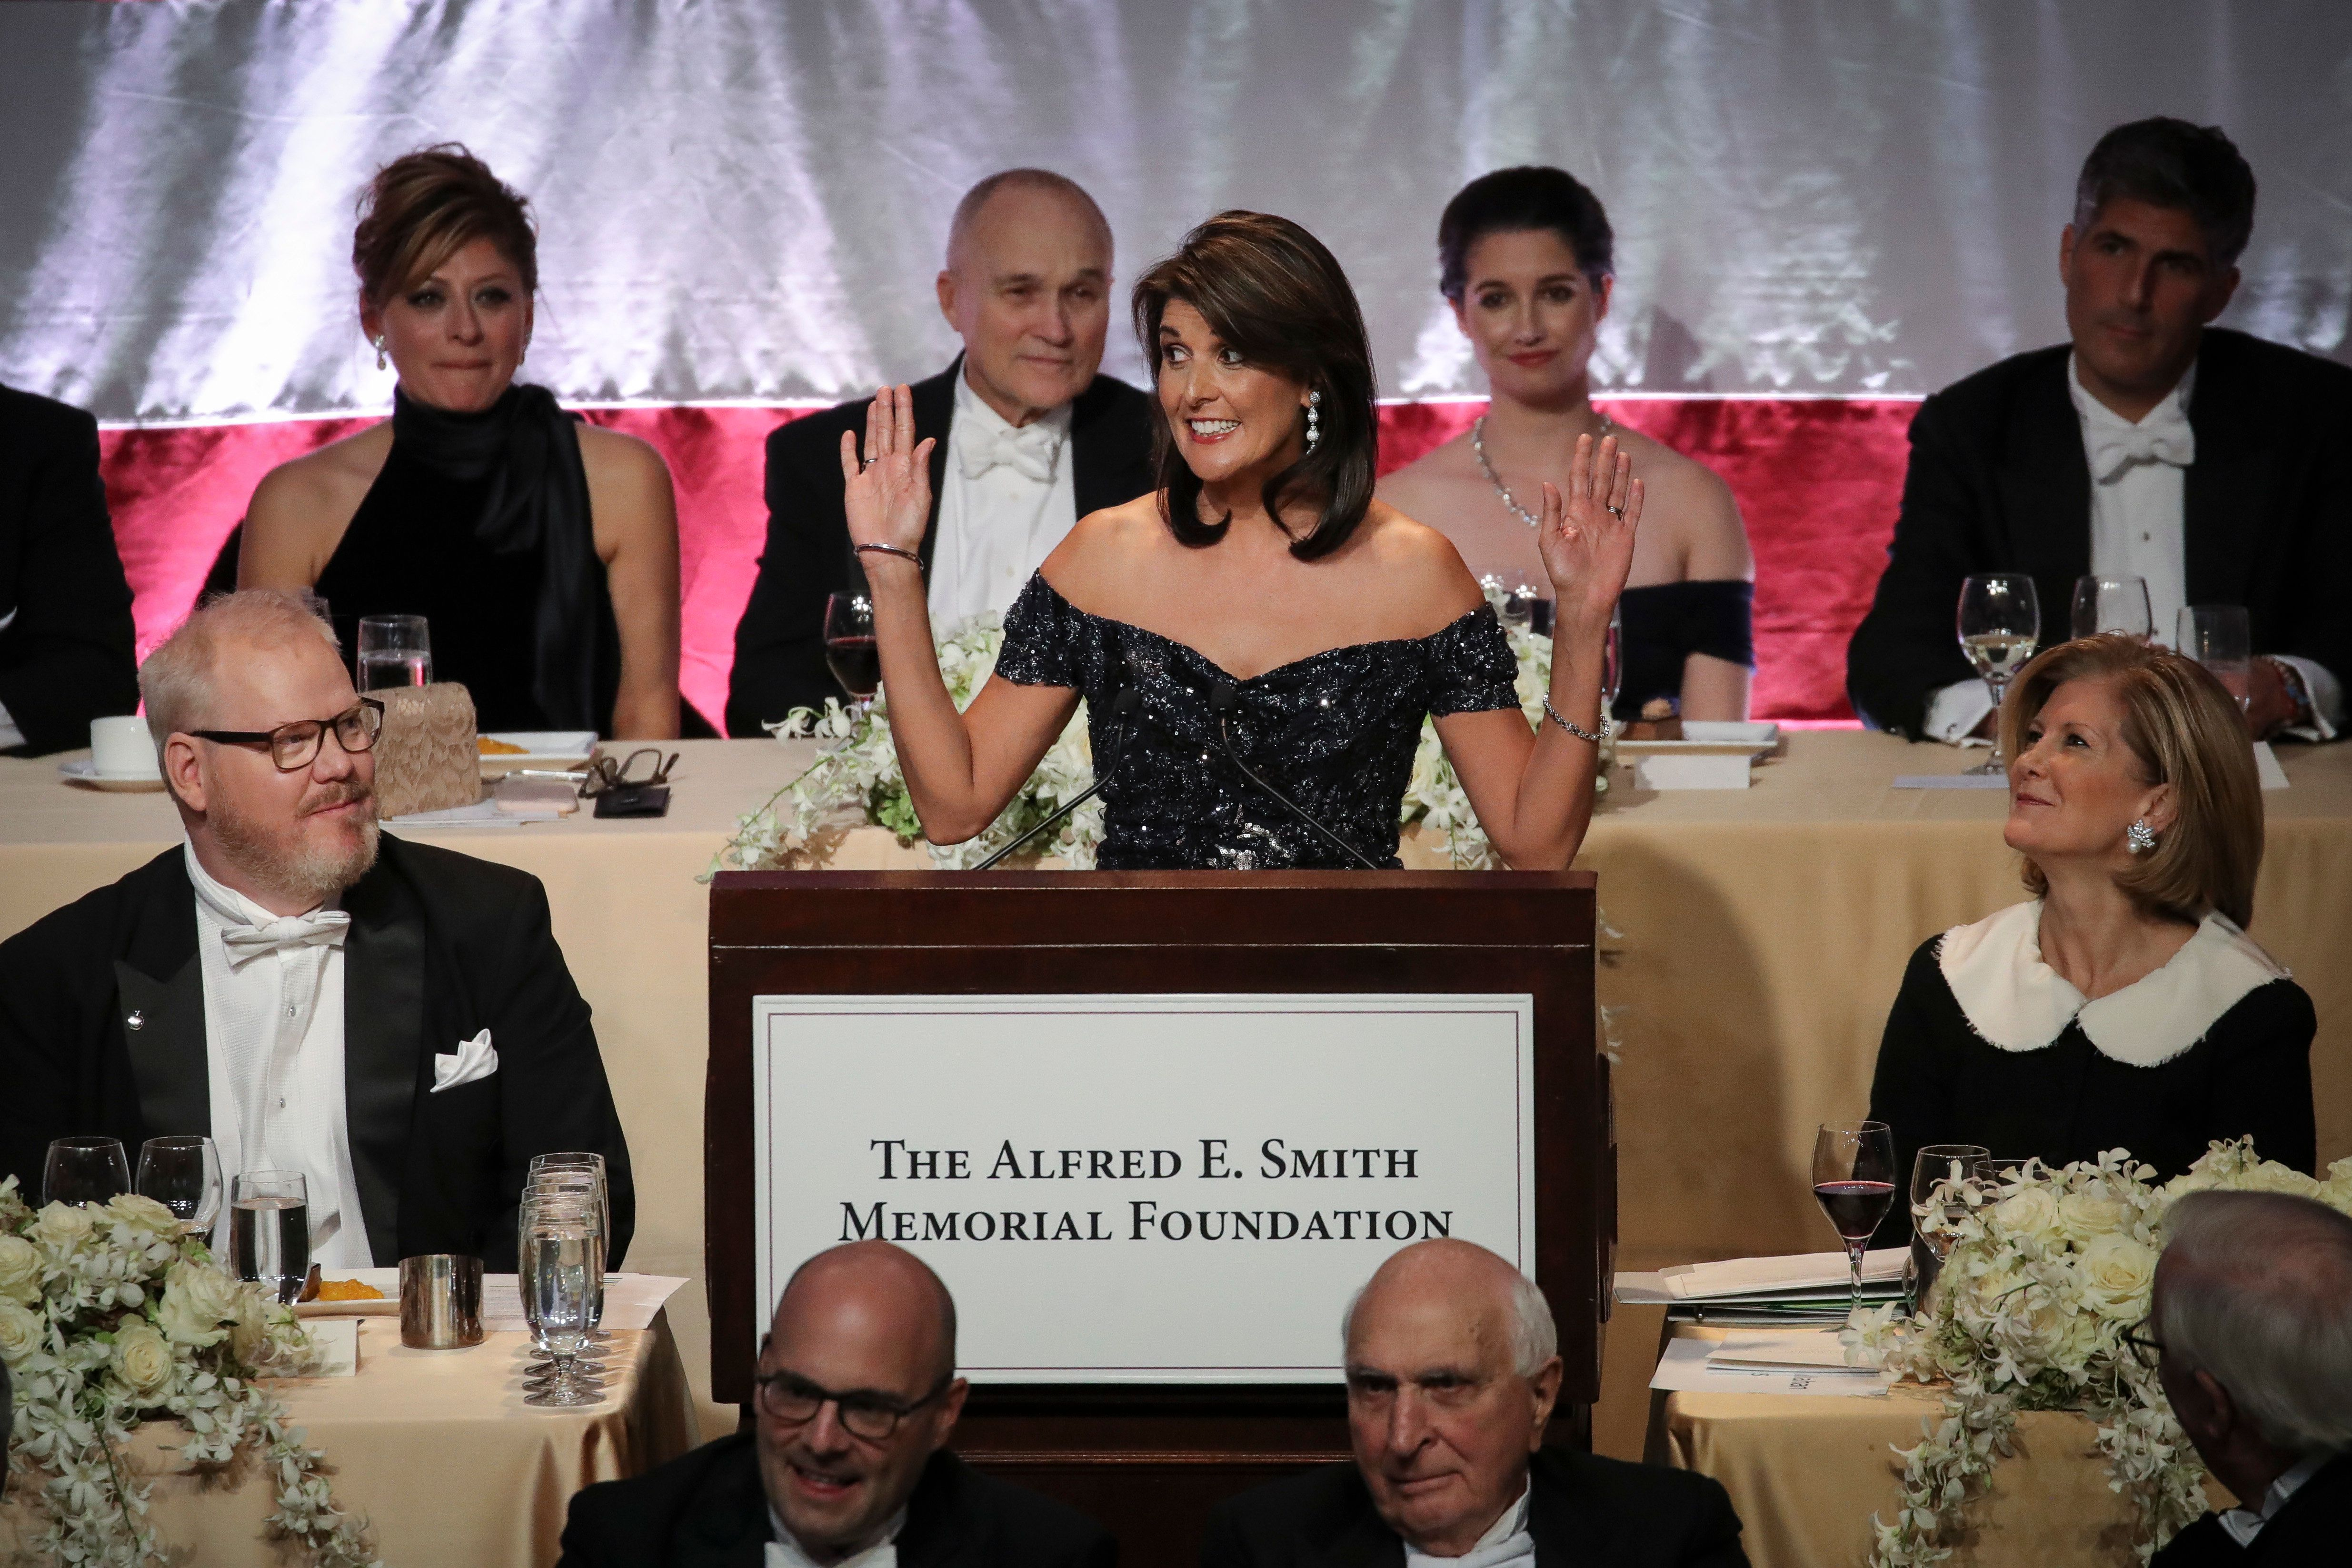 NEW YORK, NY - OCTOBER 18: U.S. Ambassador to the United Nations Nikki Haley delivers the keynote speech during the annual Alfred E. Smith Memorial Foundation dinner, October 18, 2018 in New York City. The annual white-tie dinner raises money for Catholic charities. The foundation honors the late Alfred E. Smith, former governor of New York and America's first Catholic presidential nominee. (Photo by Drew Angerer/Getty Images)